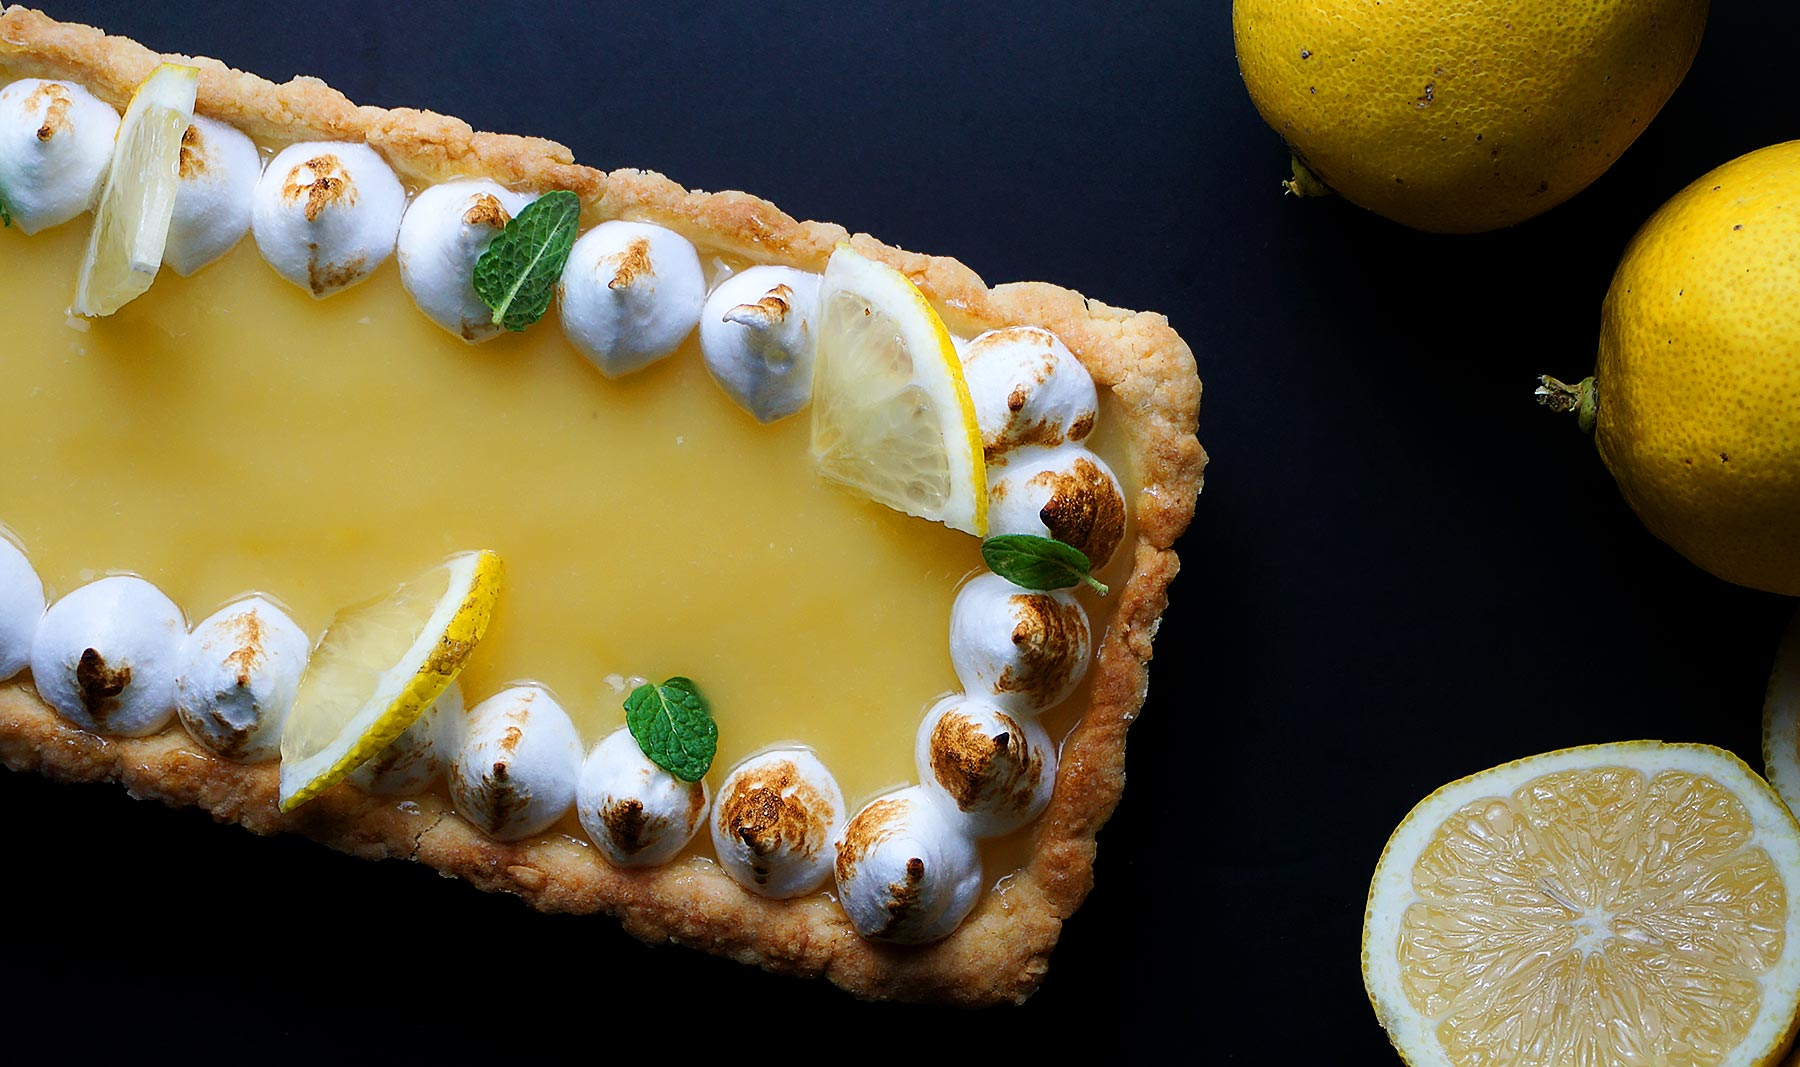 Tarta de limón y merengue (<em>Lemon Pie</em>)